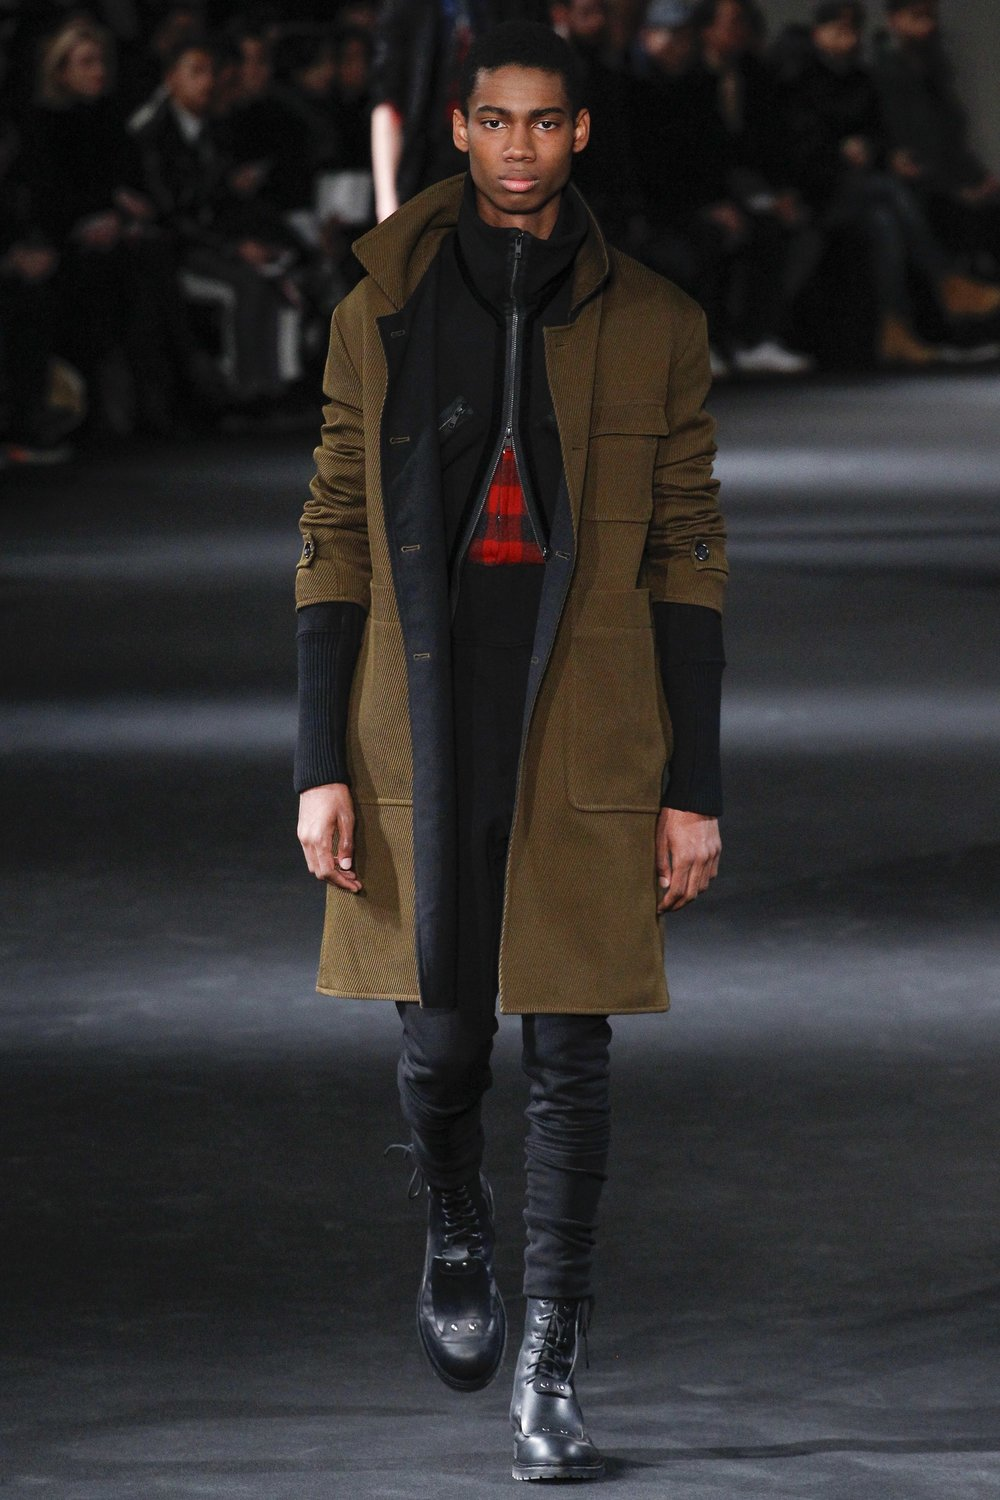 Ann Demeulemesster's Fall/Winter 2016